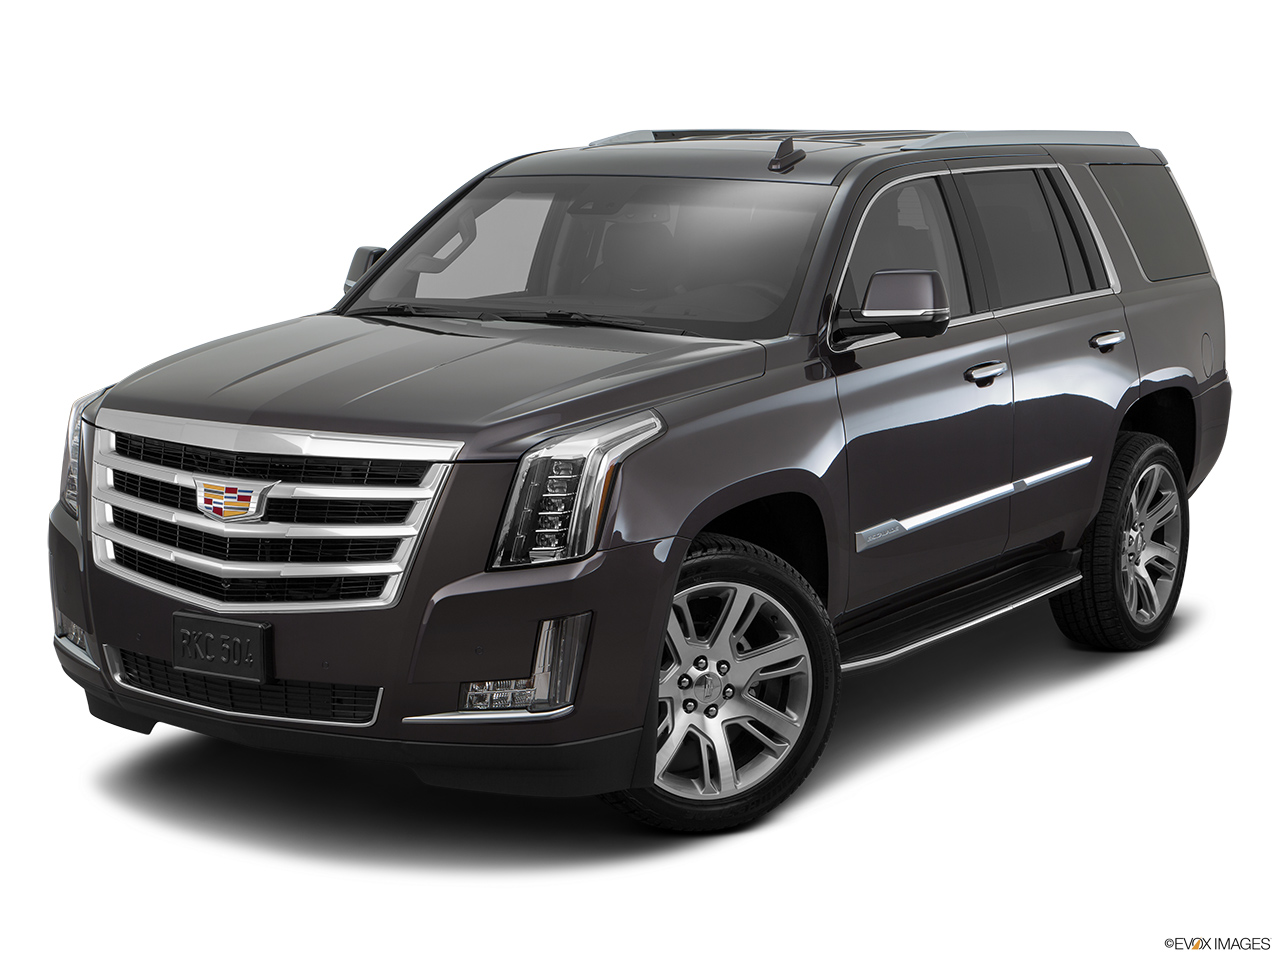 2018 cadillac escalade prices in uae gulf specs reviews for dubai abu dhabi and sharjah. Black Bedroom Furniture Sets. Home Design Ideas